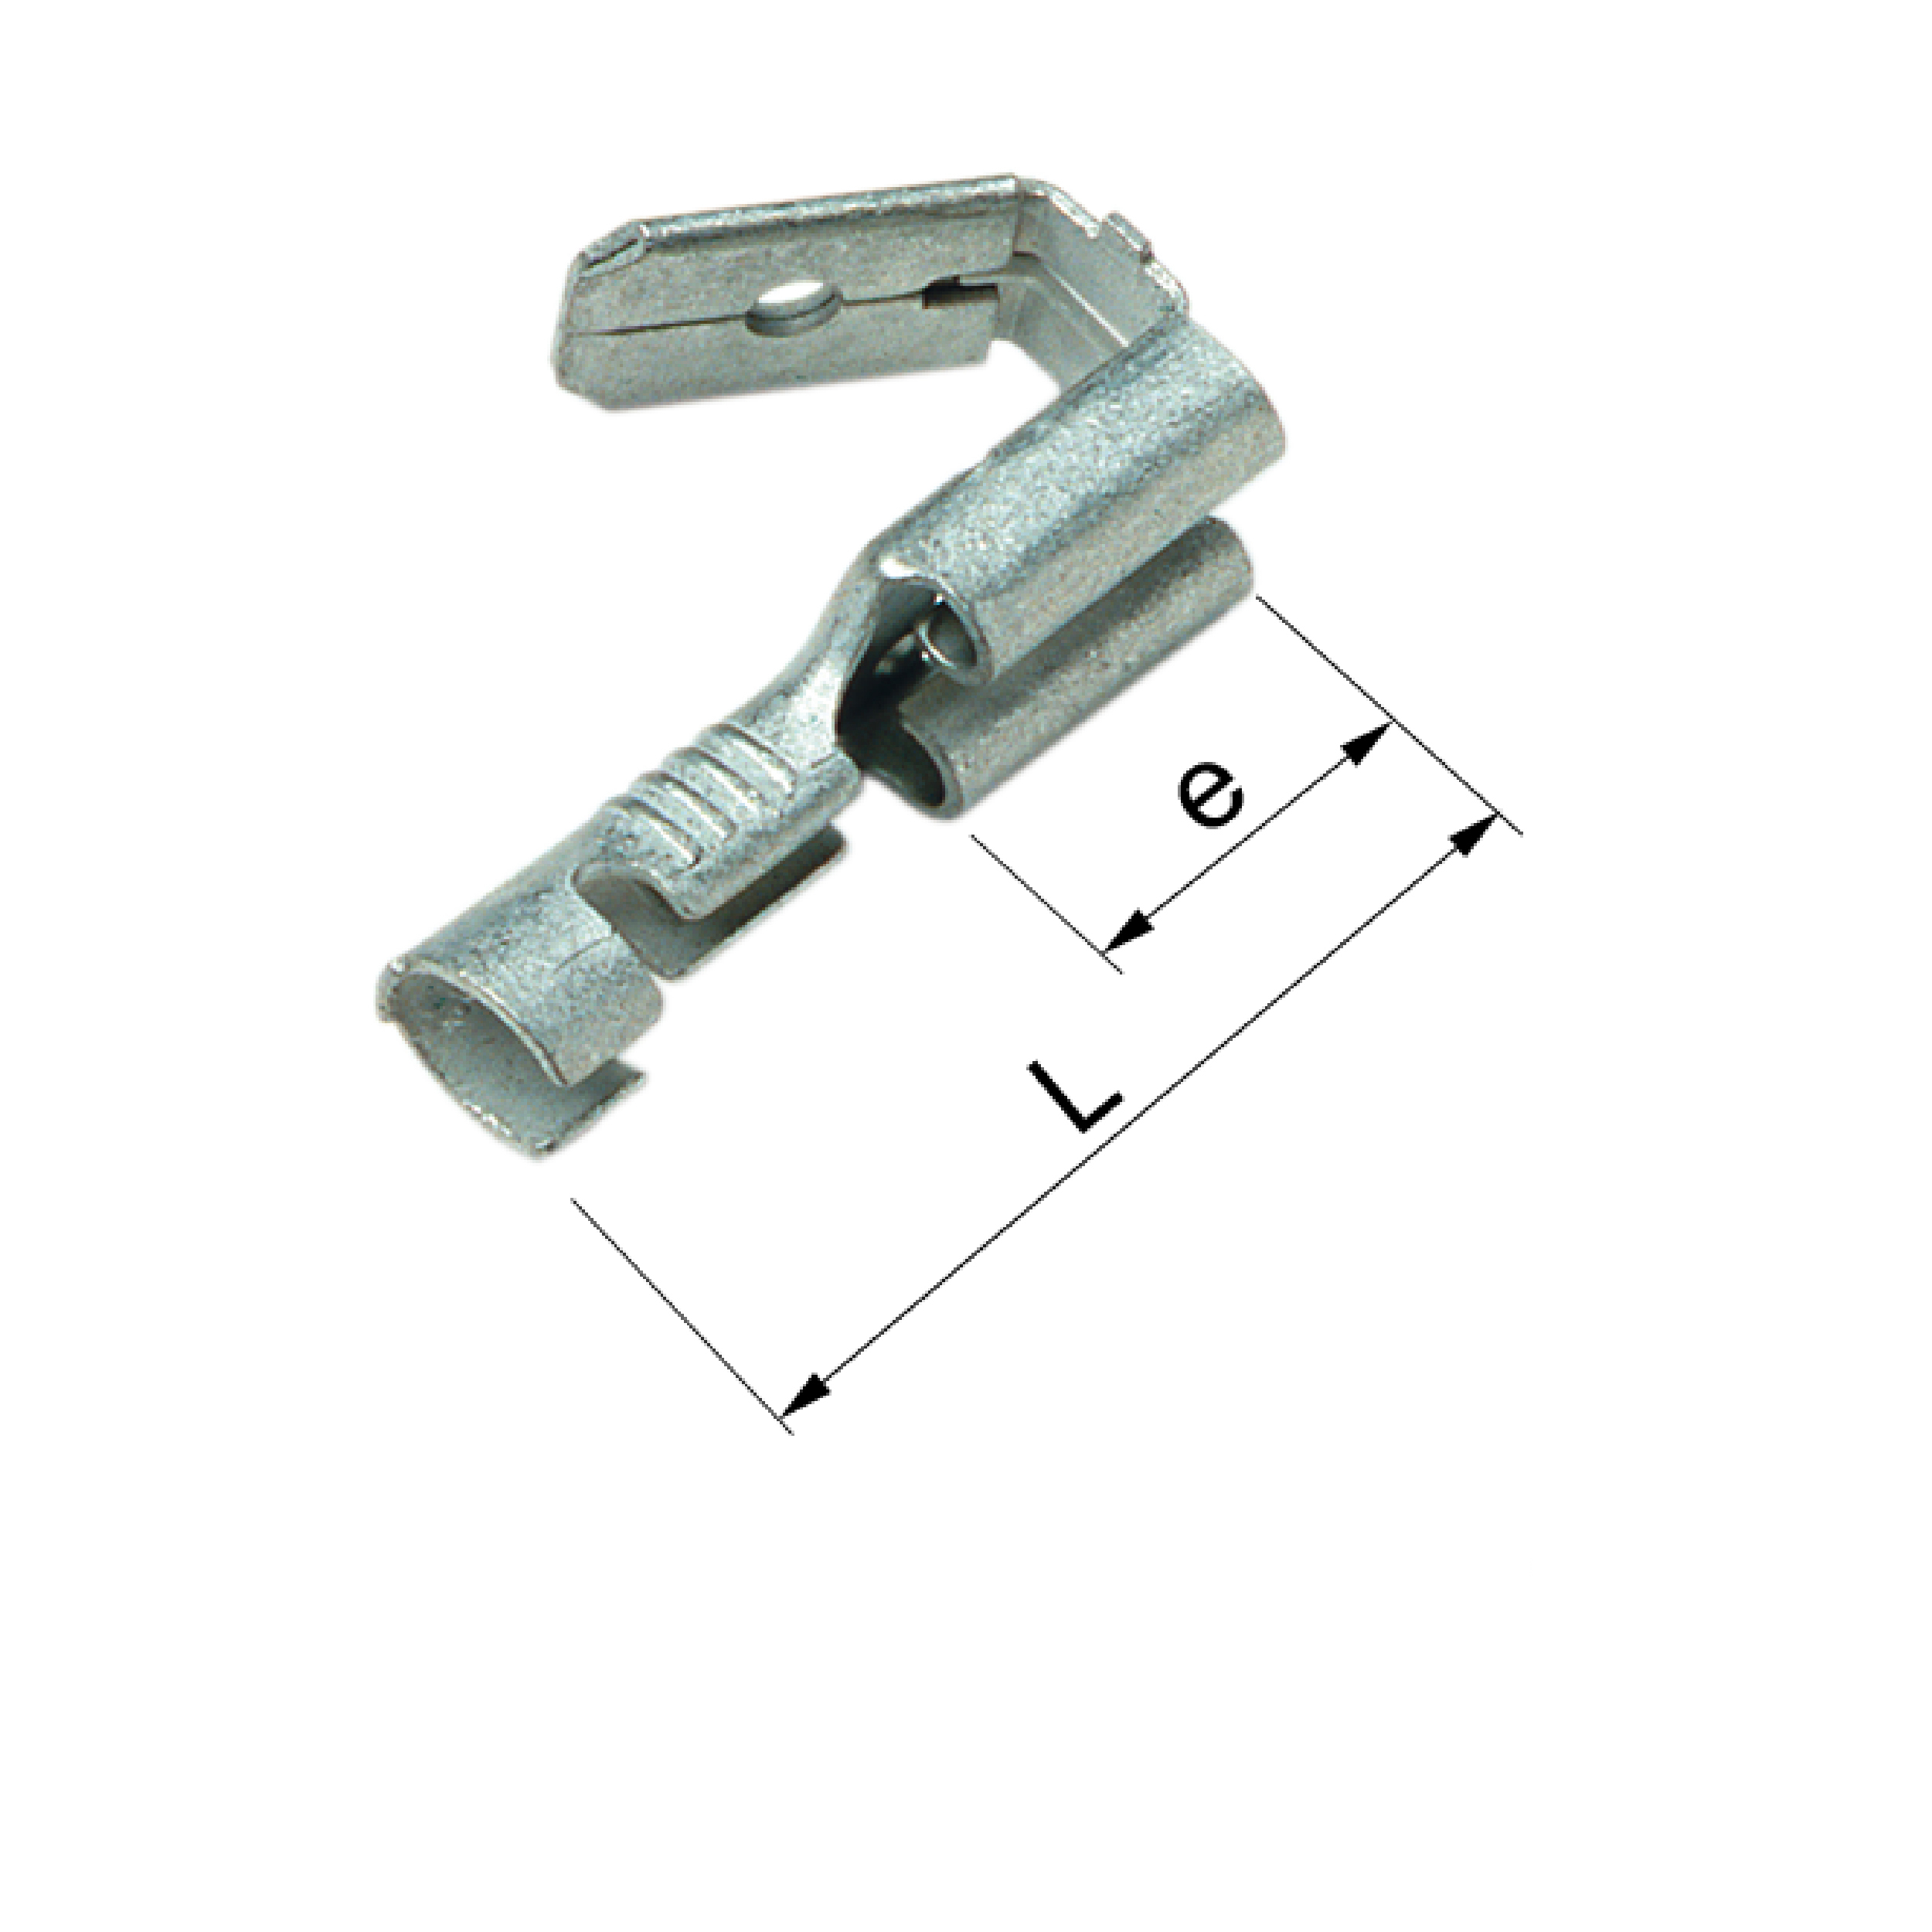 Elpress Un-Insulated Multiple Tabs (Range 0.5-2.5mm²). Part numbers: B1507FLSH, B2507FLSH